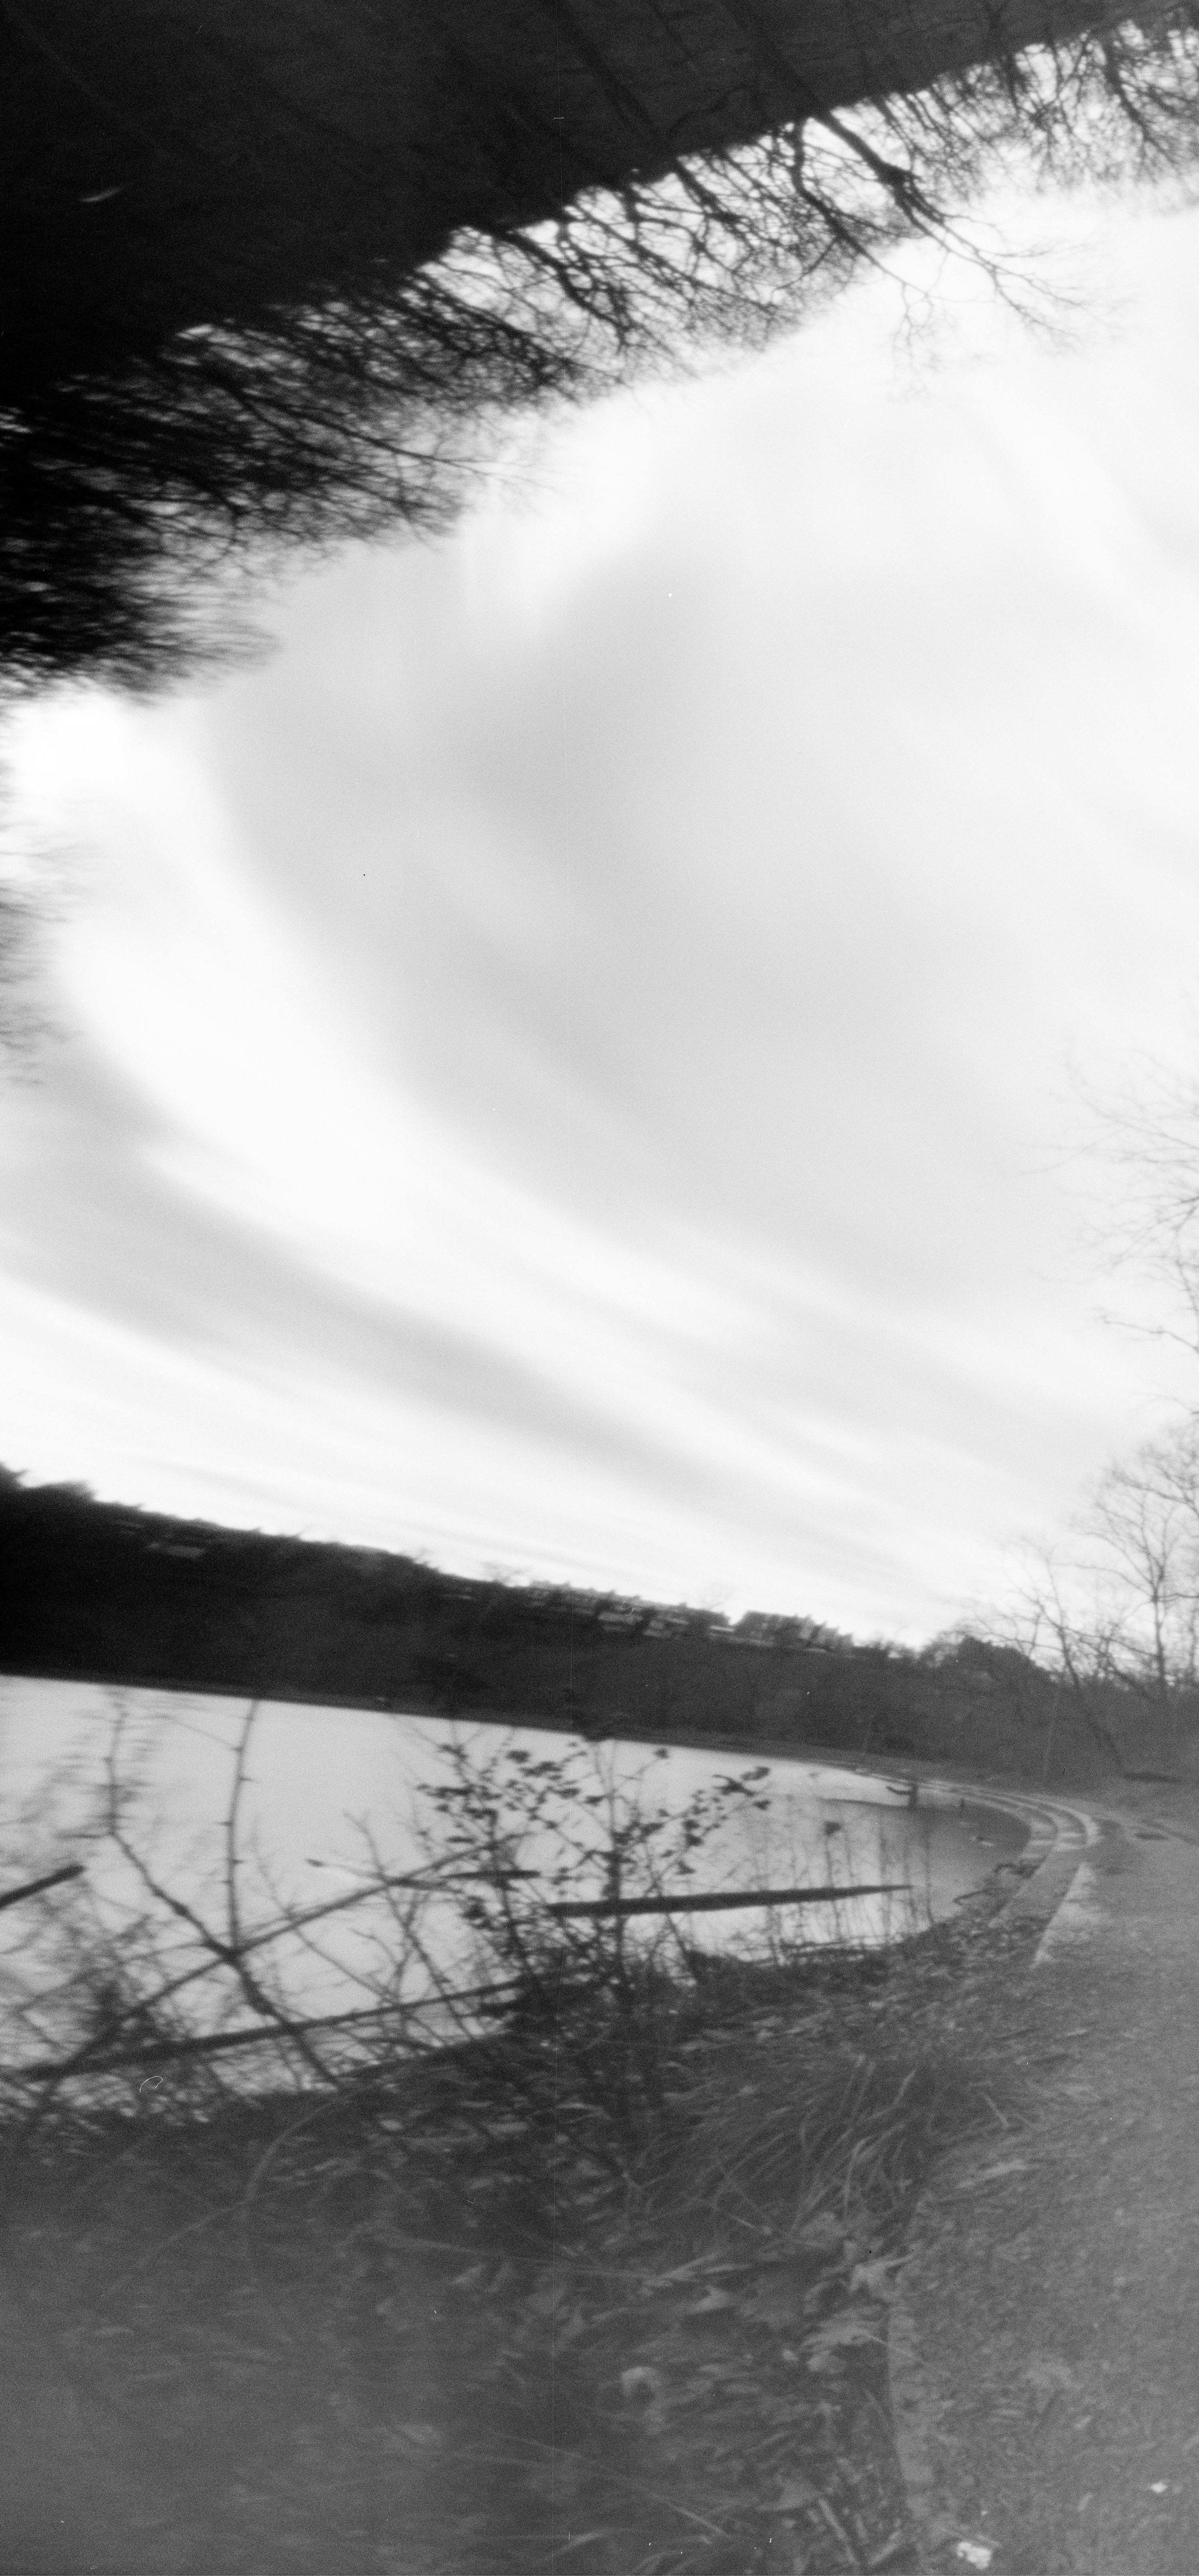 Ground and Sky, Pinhole Camera